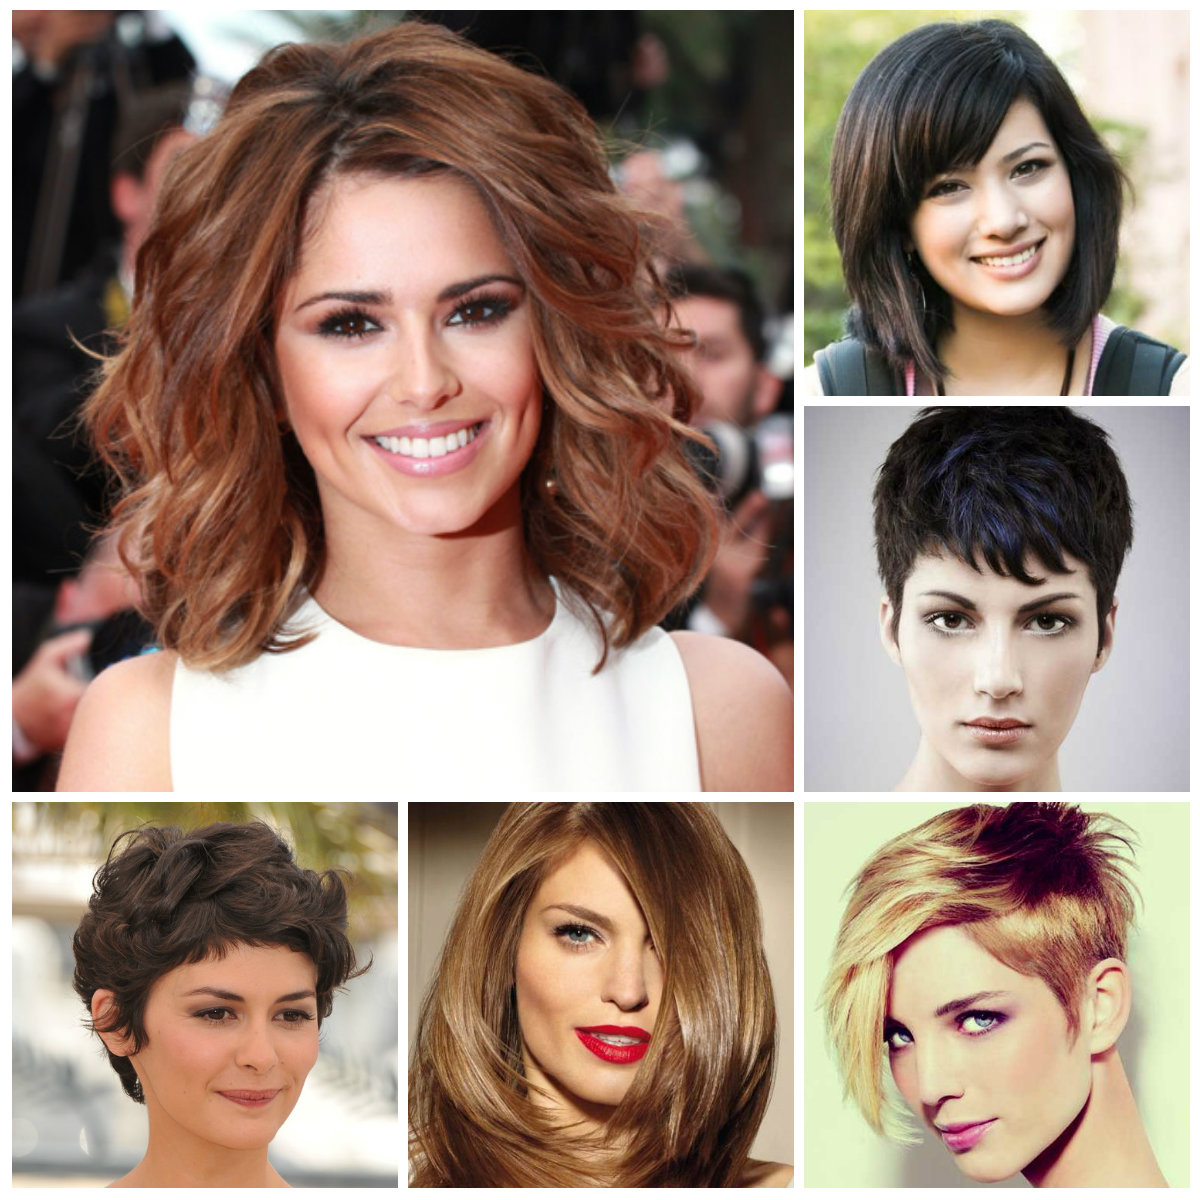 Medium And Short Haircuts For Thick Hair   Hairstyles For Women 2019 In Short To Medium Hairstyles For Thick Hair (View 19 of 25)